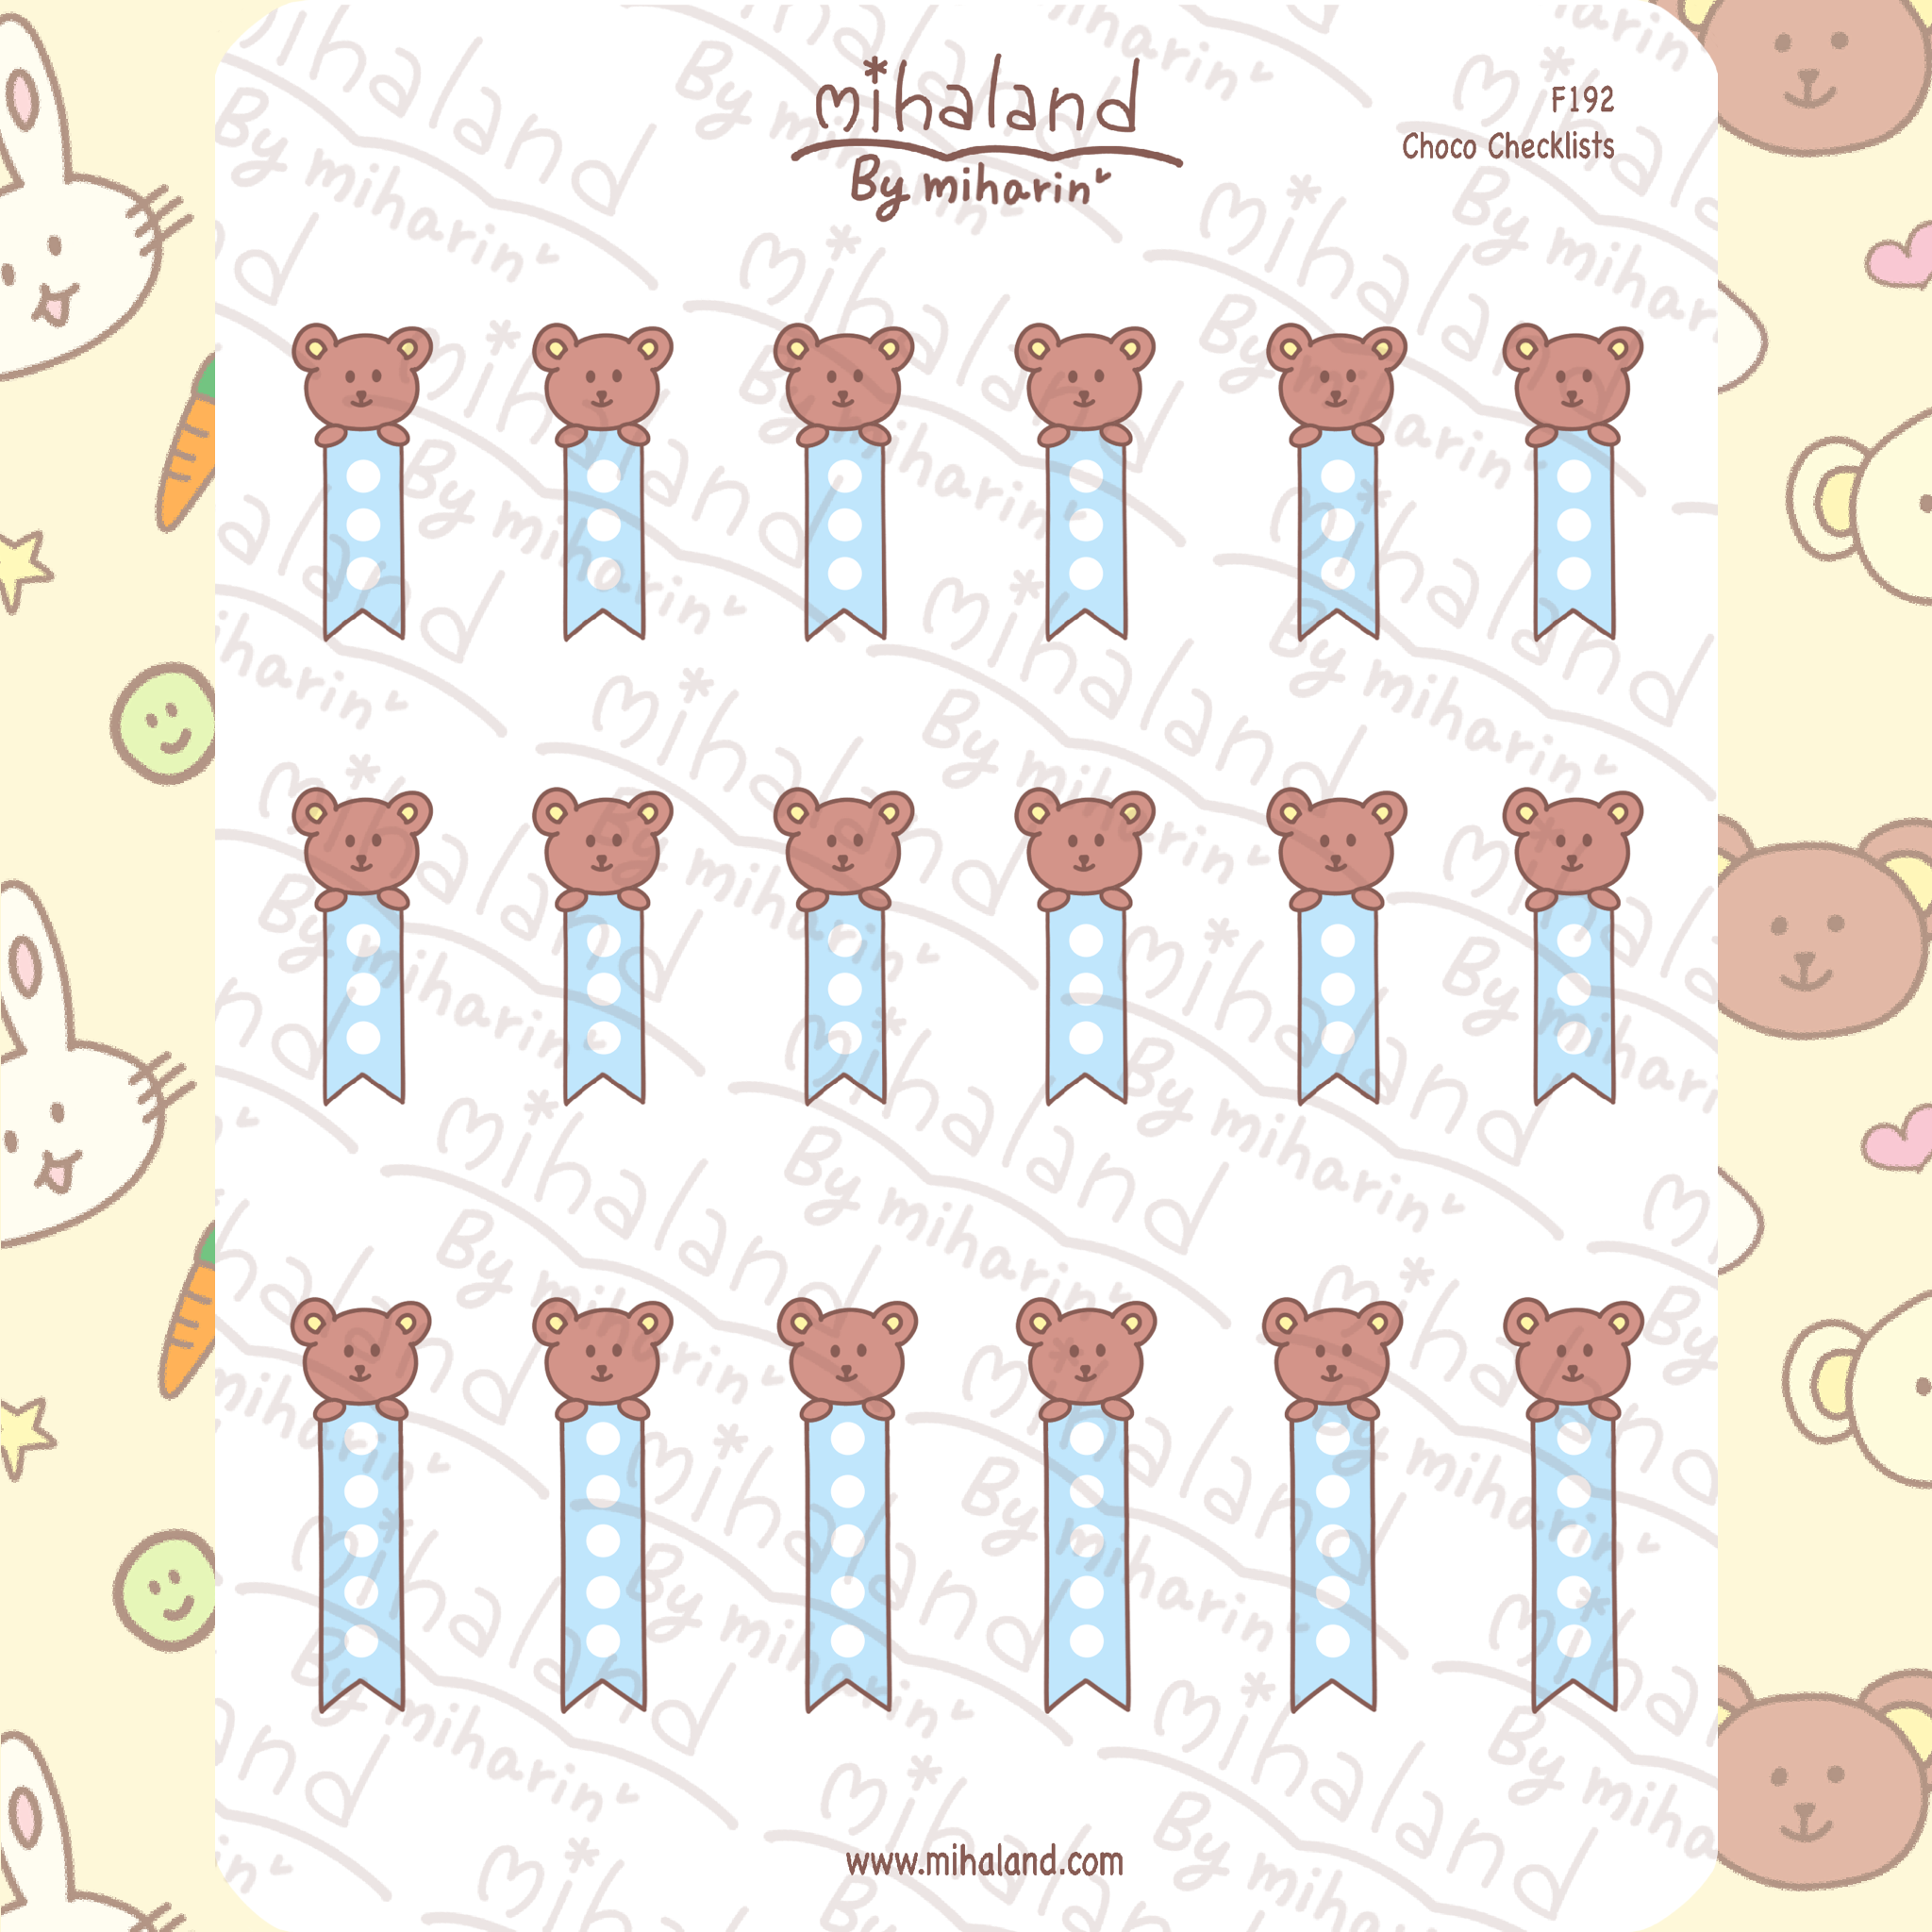 Choco Checklists Planner Stickers (F192)